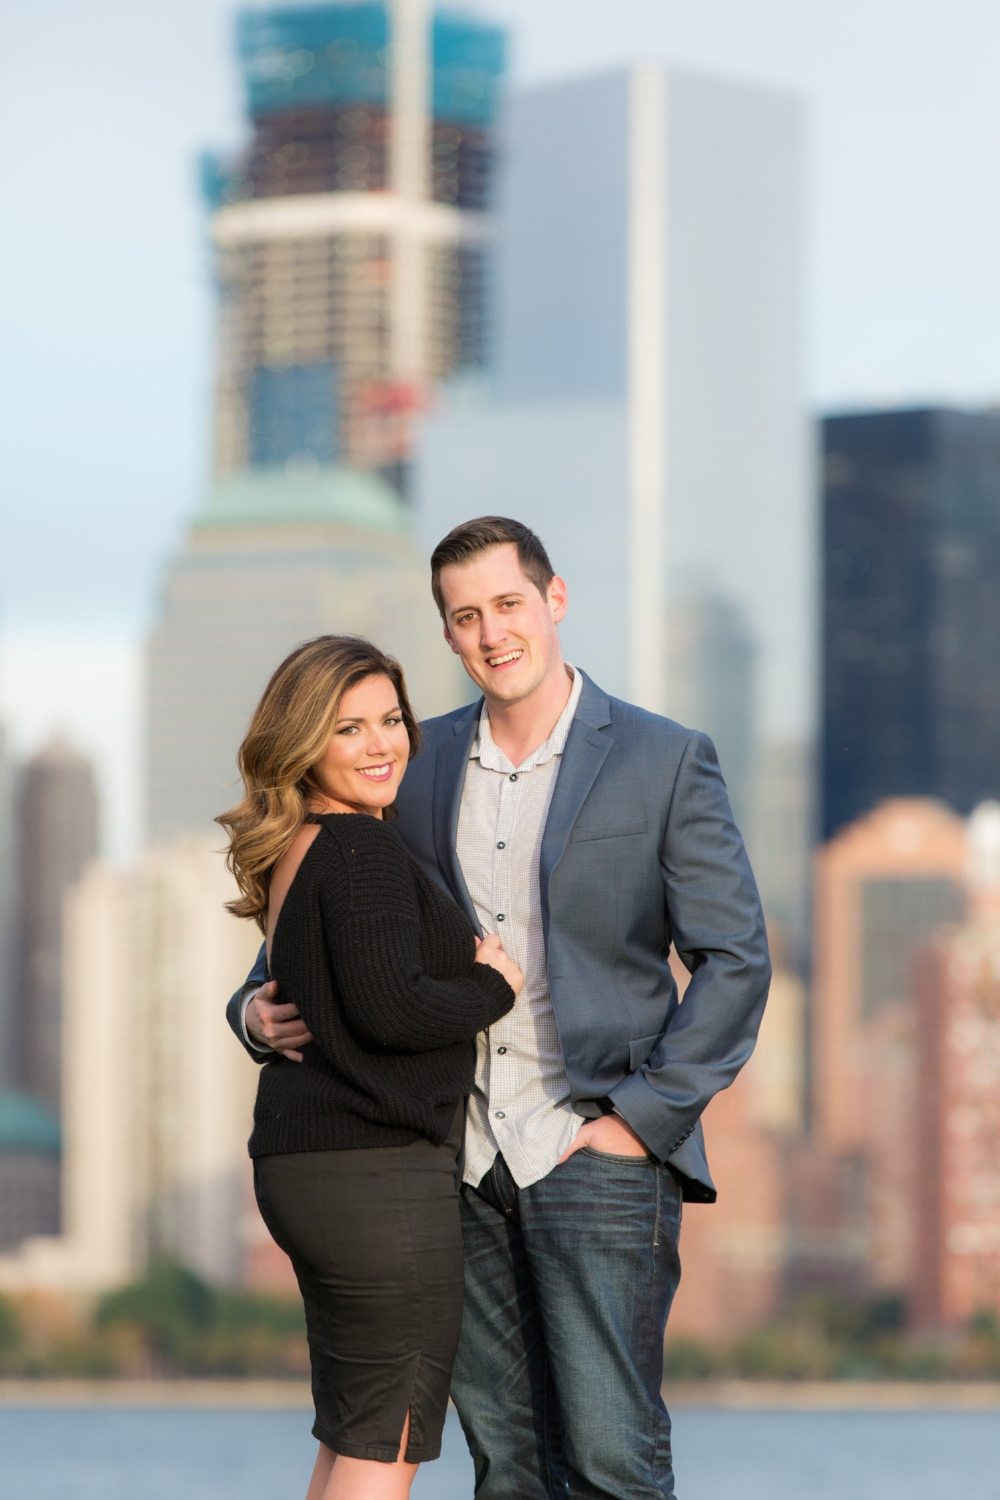 jacnjules photograph engagement session at Liberty State Park in Jersey City NJ